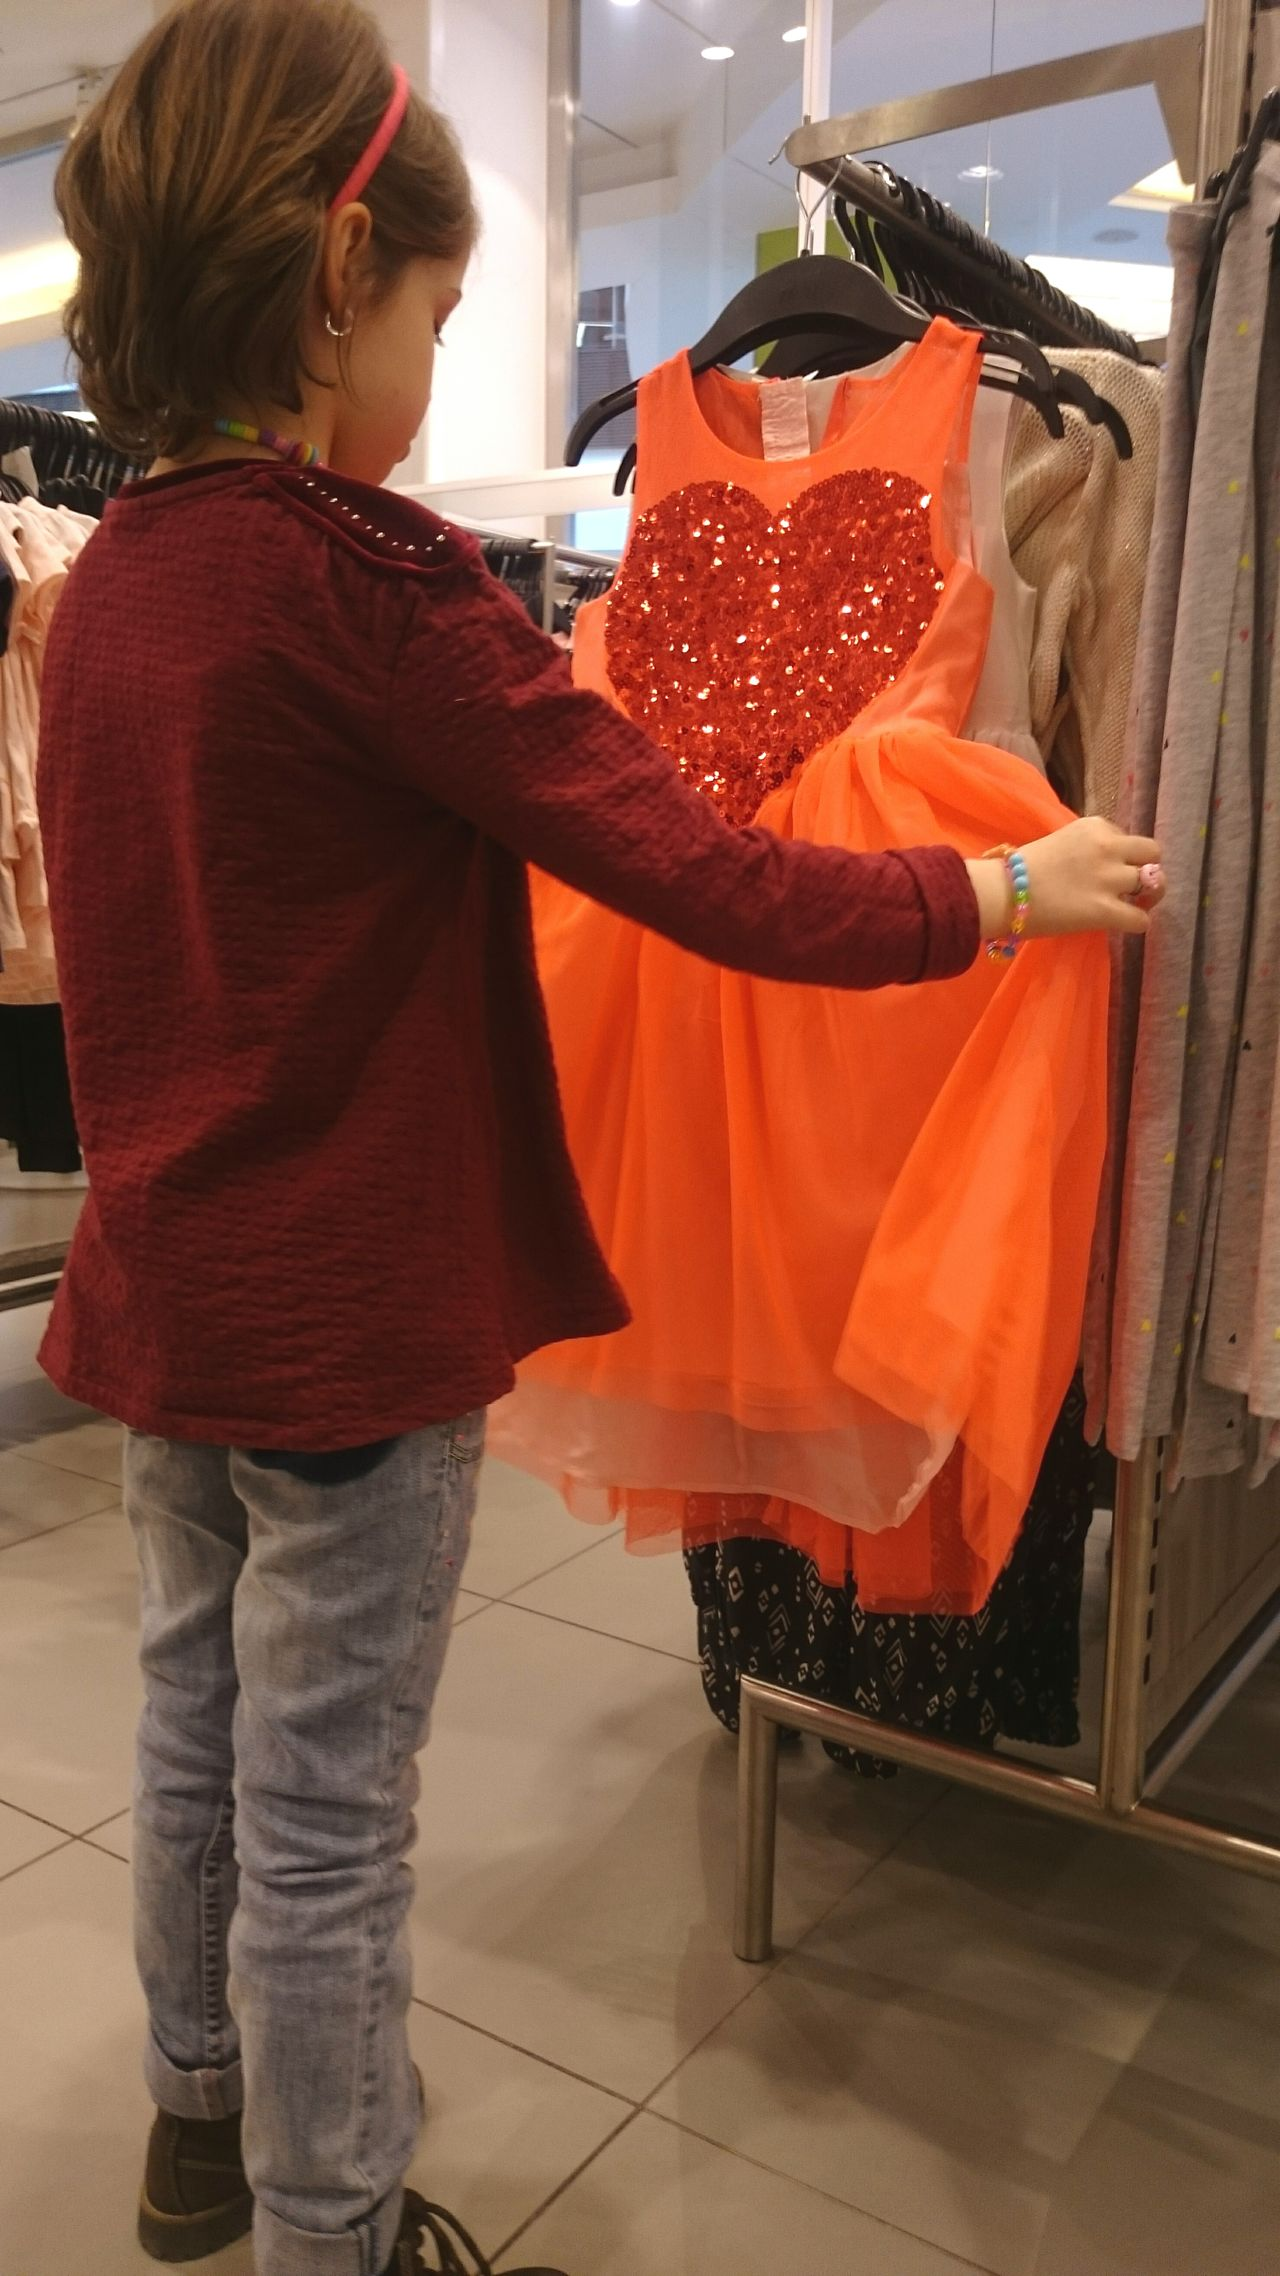 She didn't left the shop without that dress... Wish Child Desire I Wish I Could Have It Princess Dreams Best Dress Taking Photos Enjoying Life Beautiful Girl Wishes A Dress Happiness Priceless Shopping Shopping Therapy Urban Spring Fever Week On Eyeem